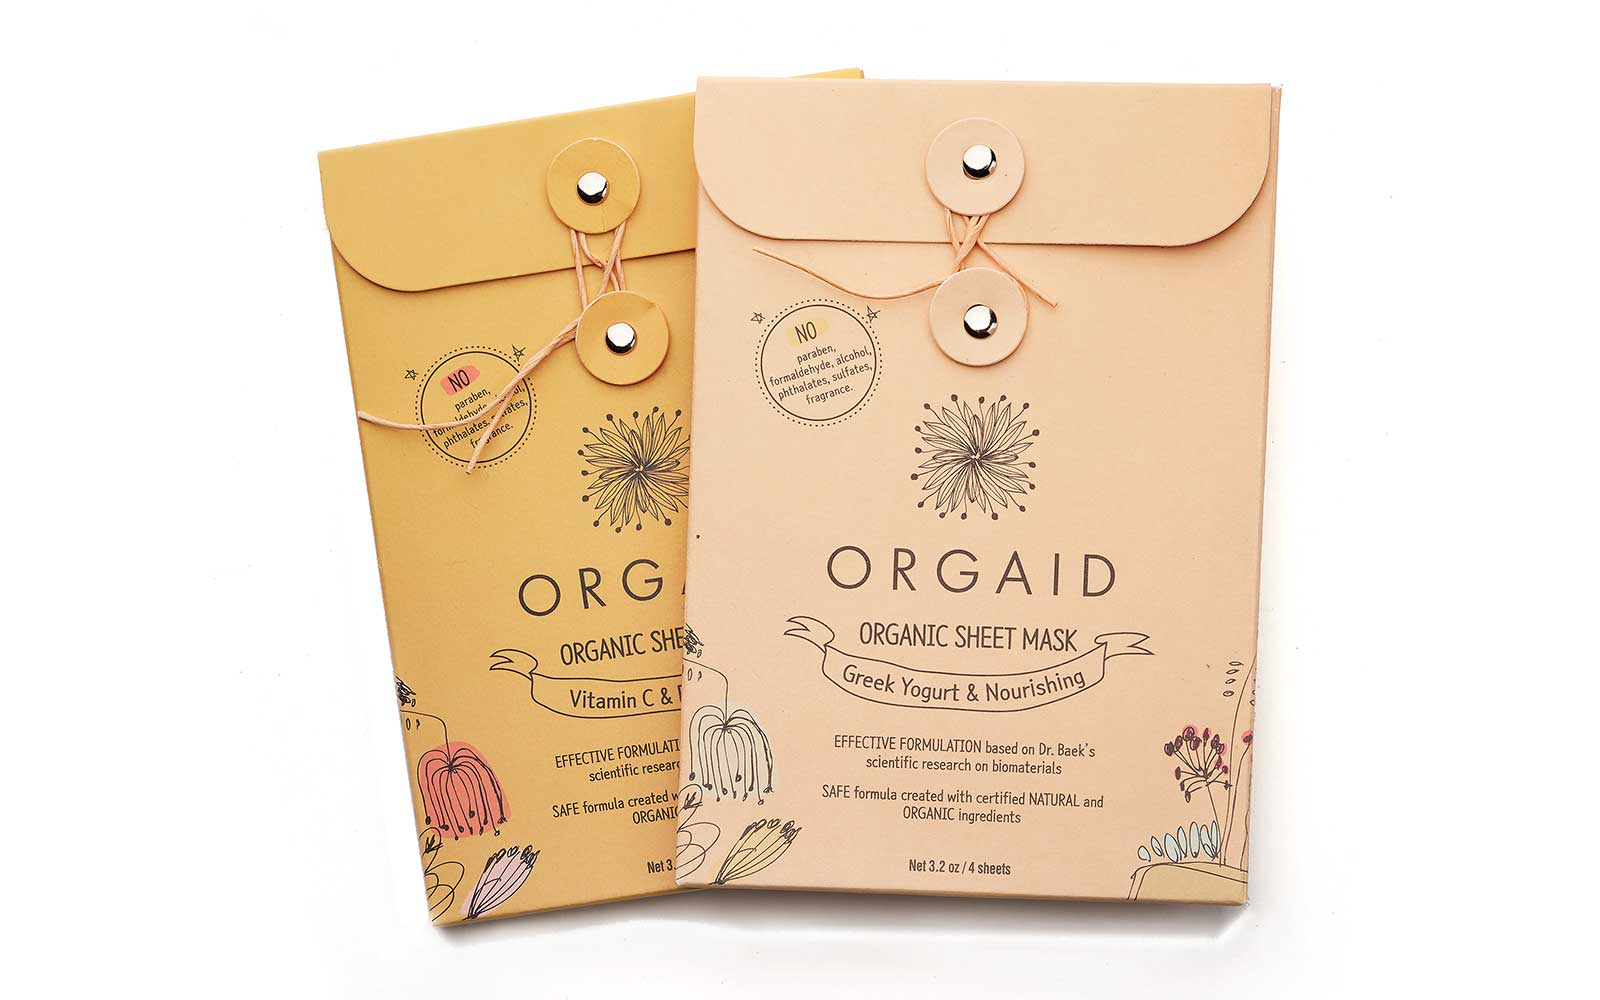 Orgaid organic sheet masks